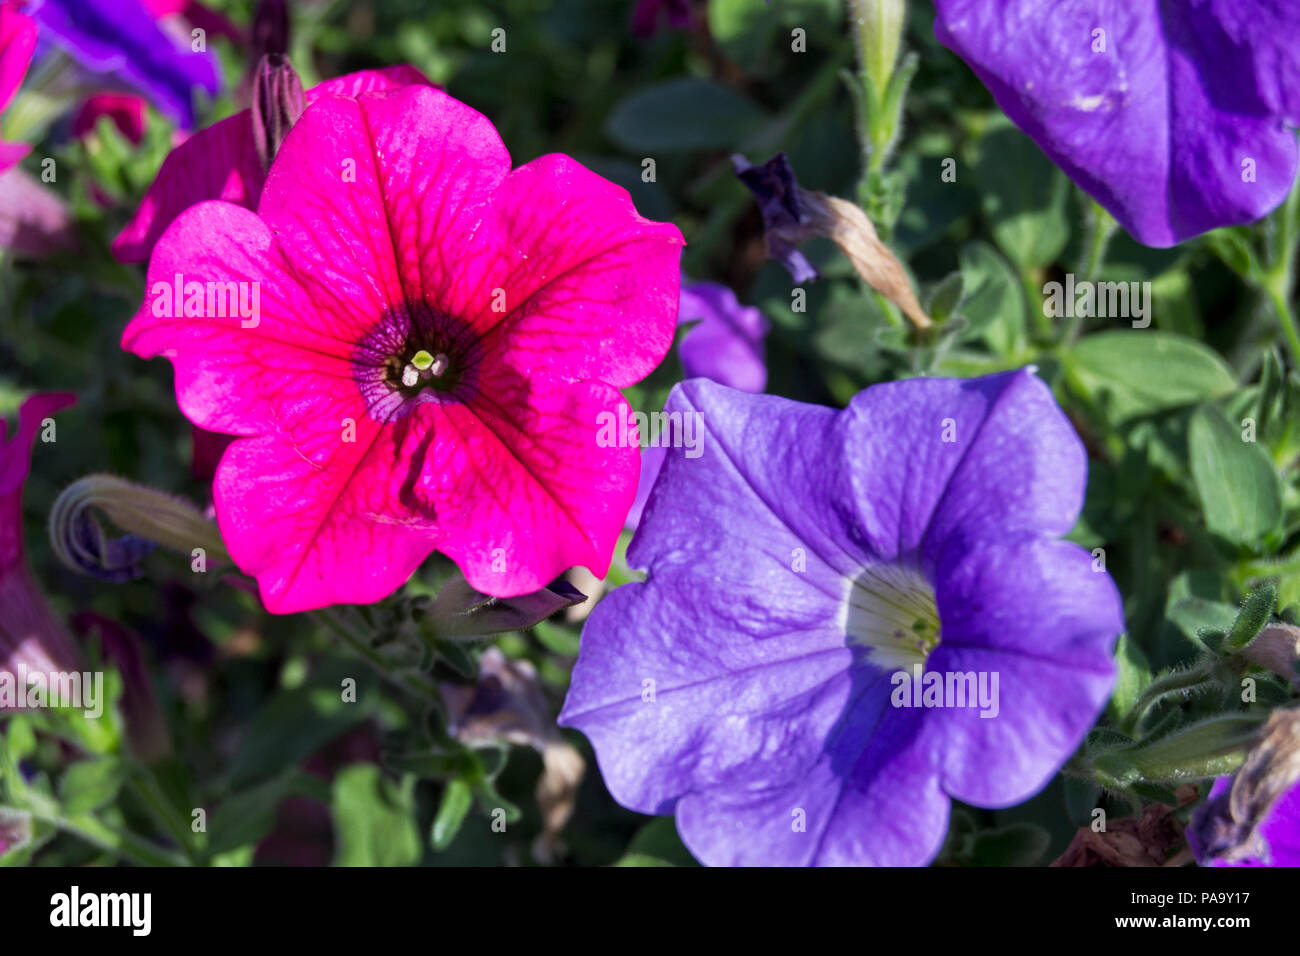 red and violet colorfull petunia flowers -  Petunioideae,  Solanaceae, Solanales - Stock Image